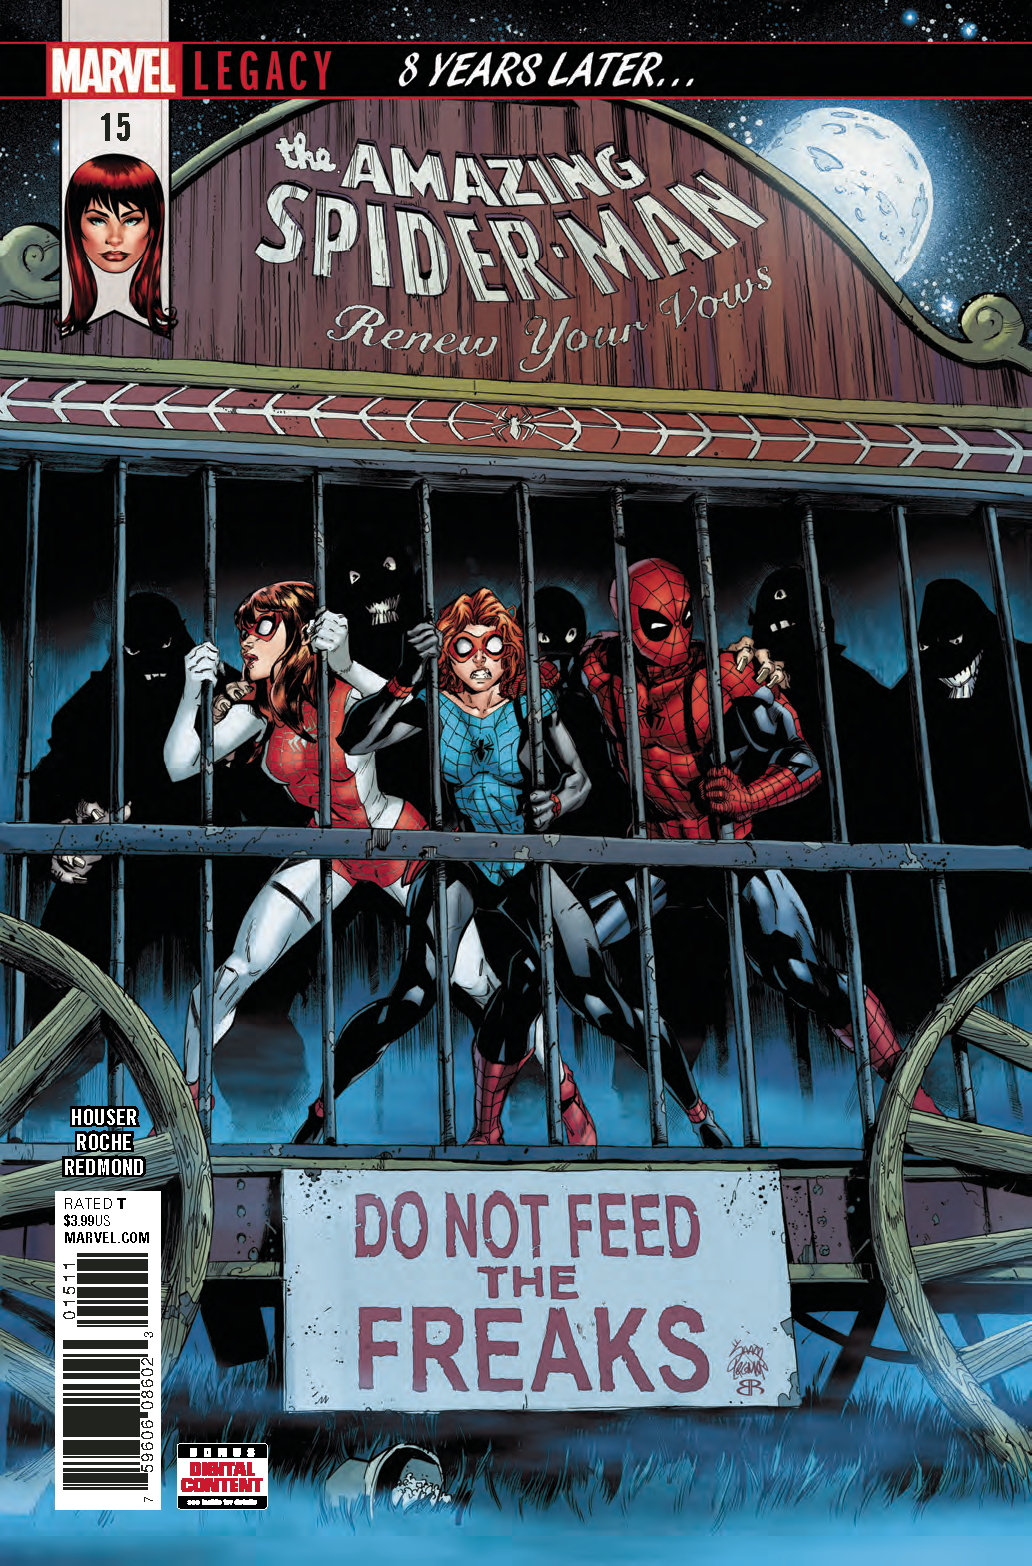 AMAZING SPIDER-MAN RENEW YOUR VOWS #15 LEG